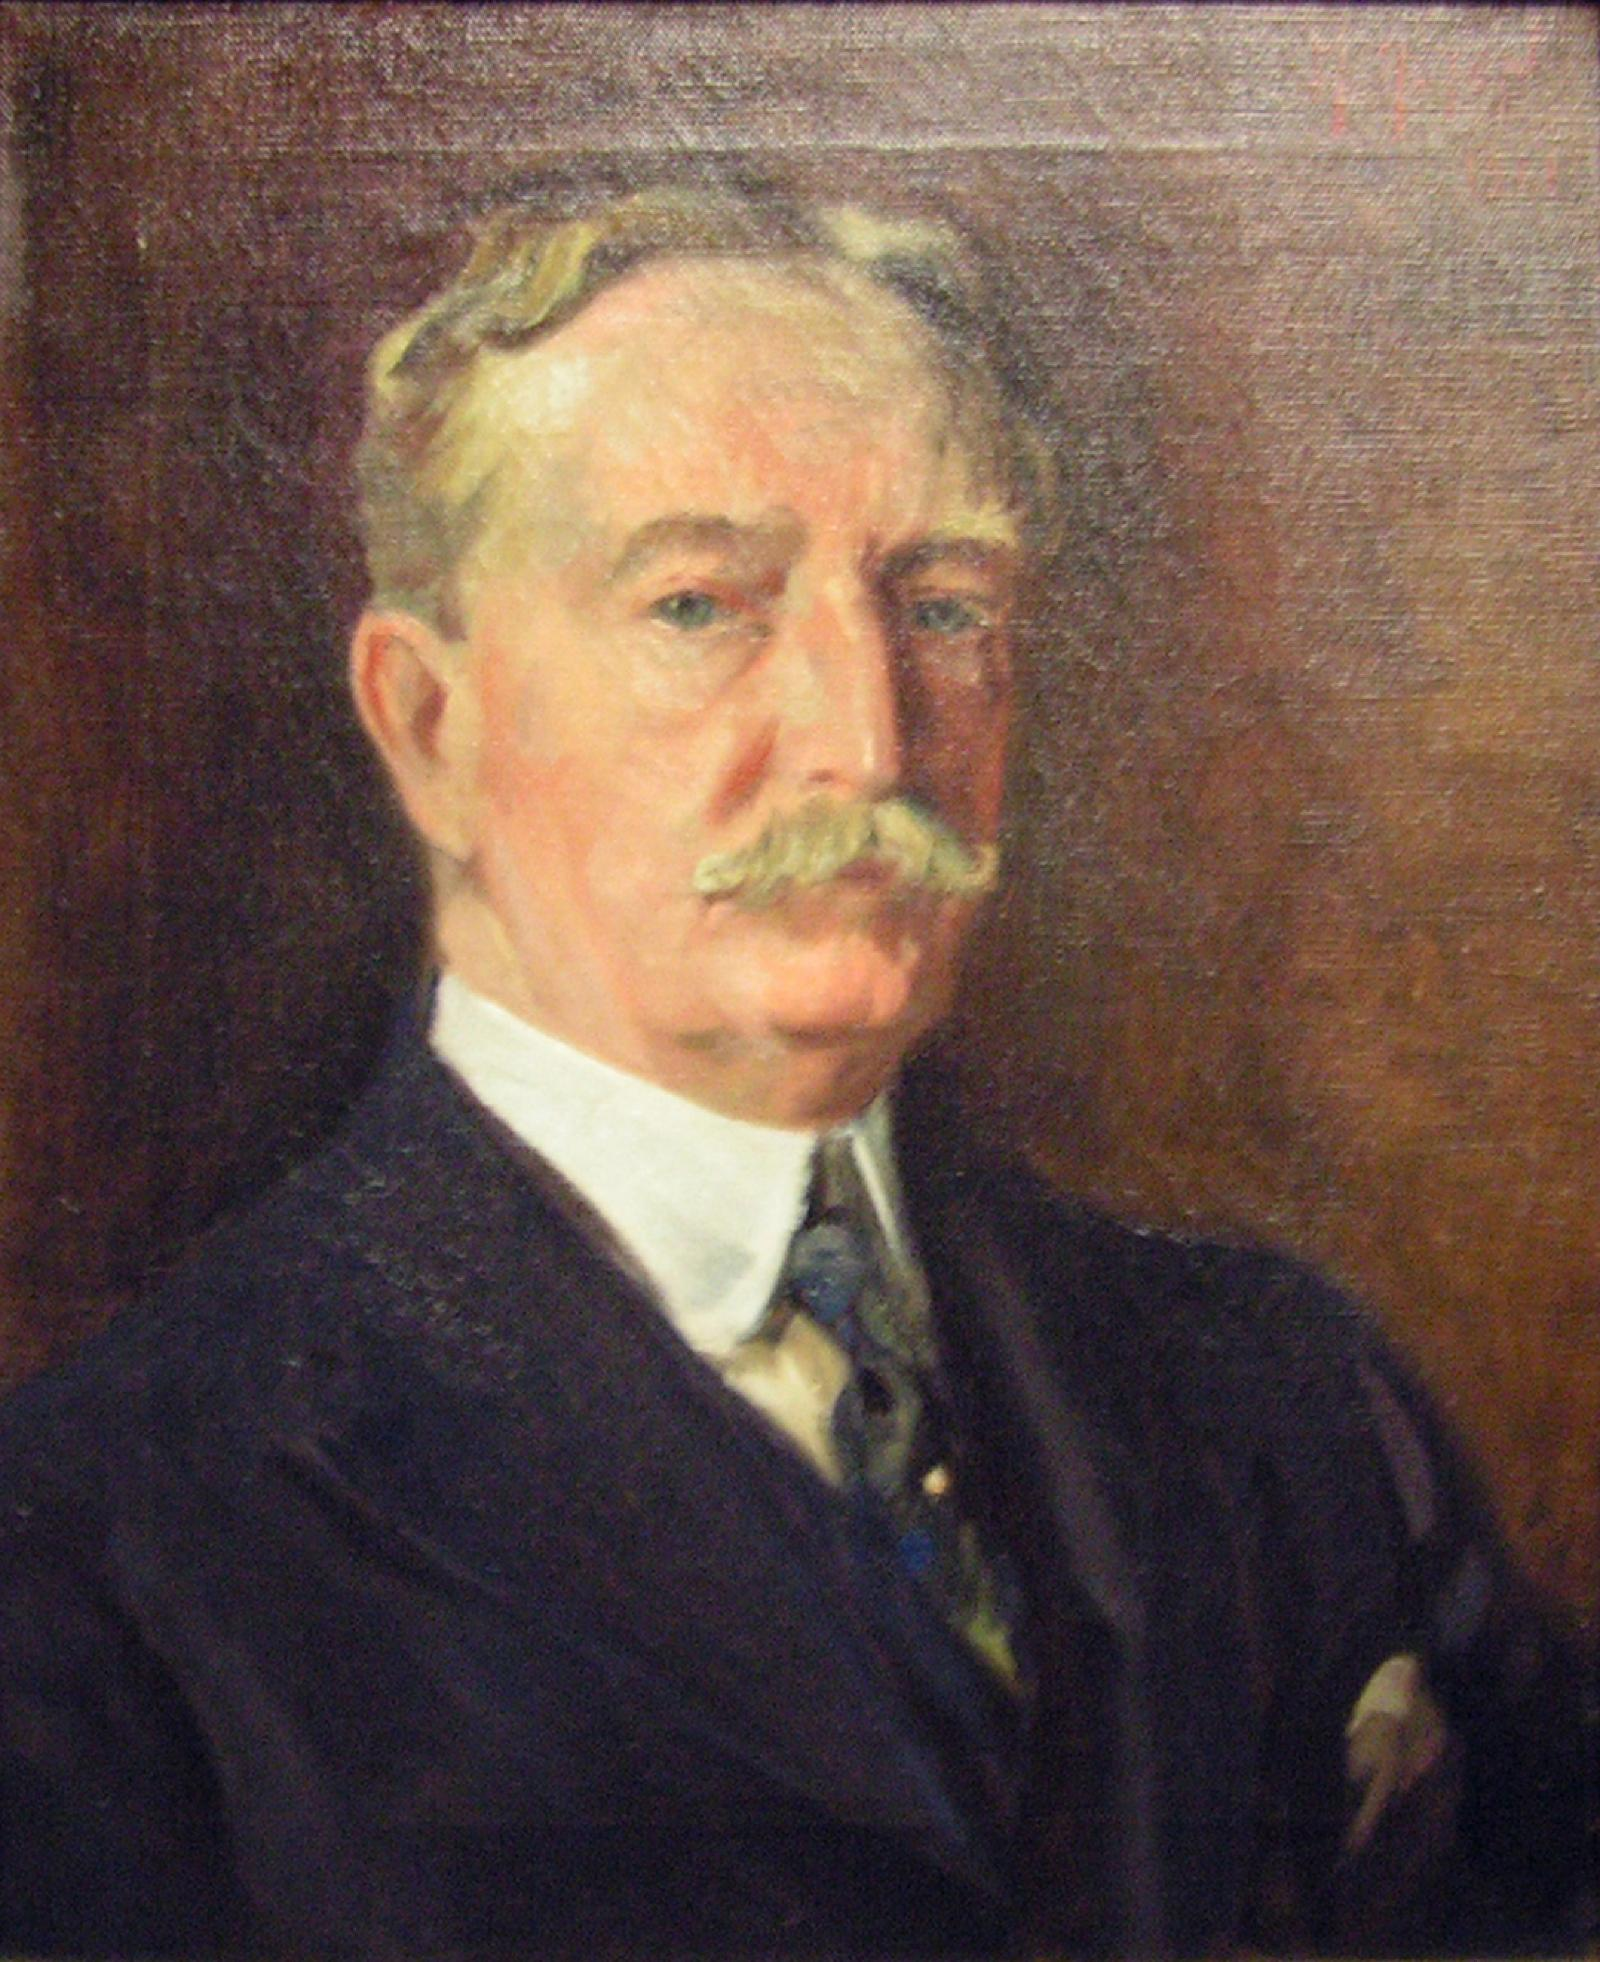 A portrait of an aging gentleman with blond hair and a blond mustache staring straight forward; body leans towards the right.